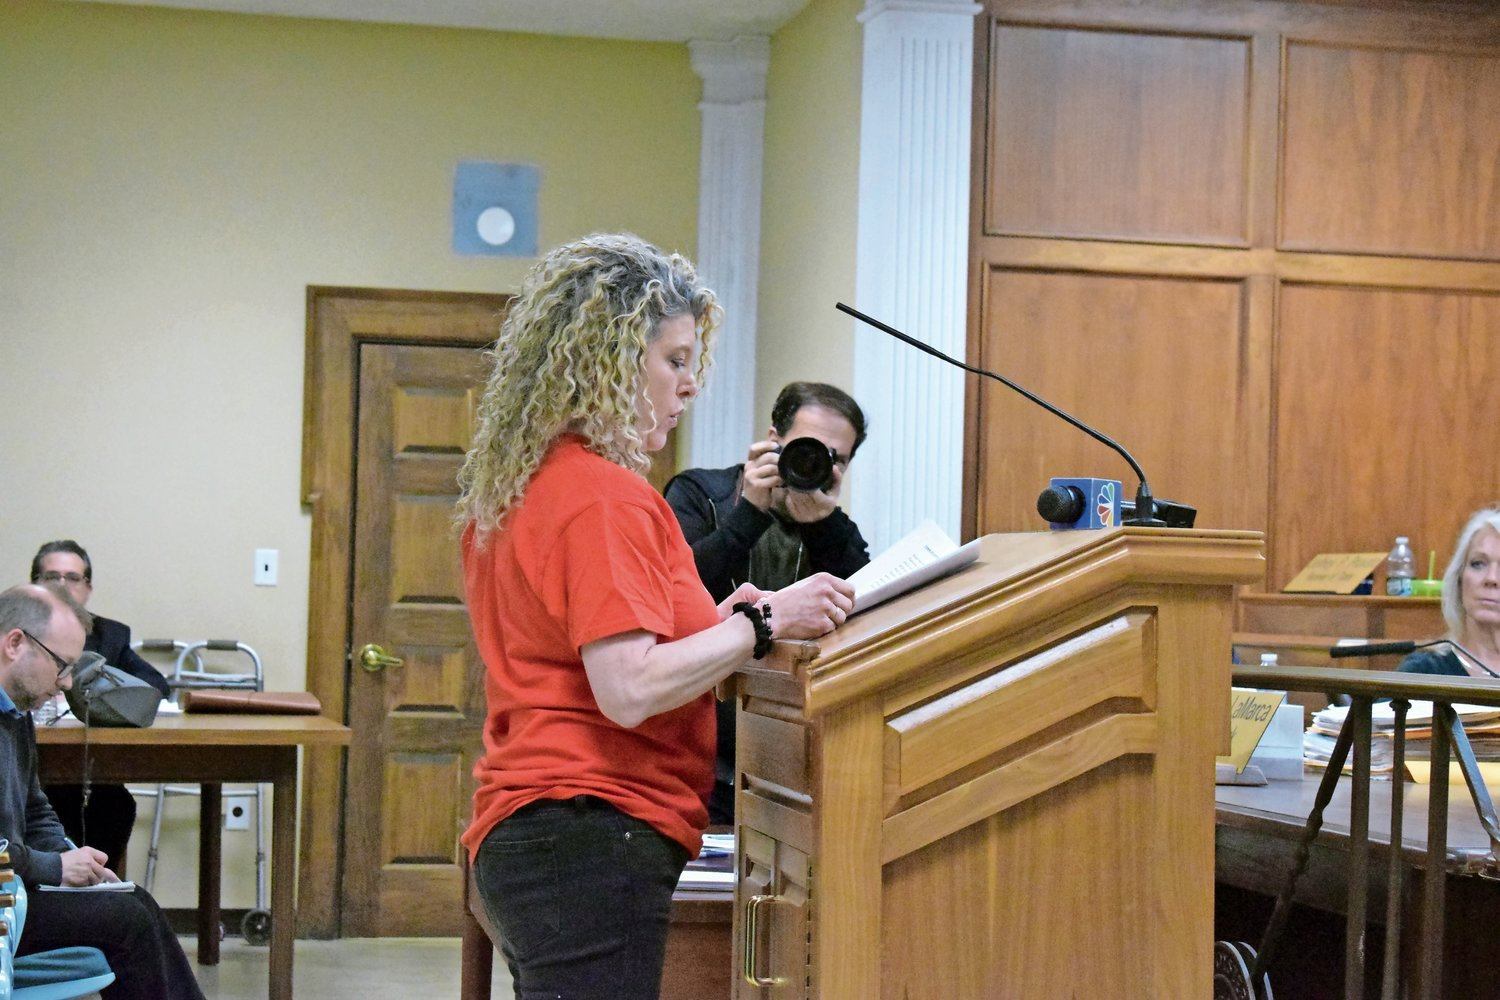 Lori Prisand advocated for changes at the Oyster Bay Animal Shelter during a Town Council meeting on Feb. 11.